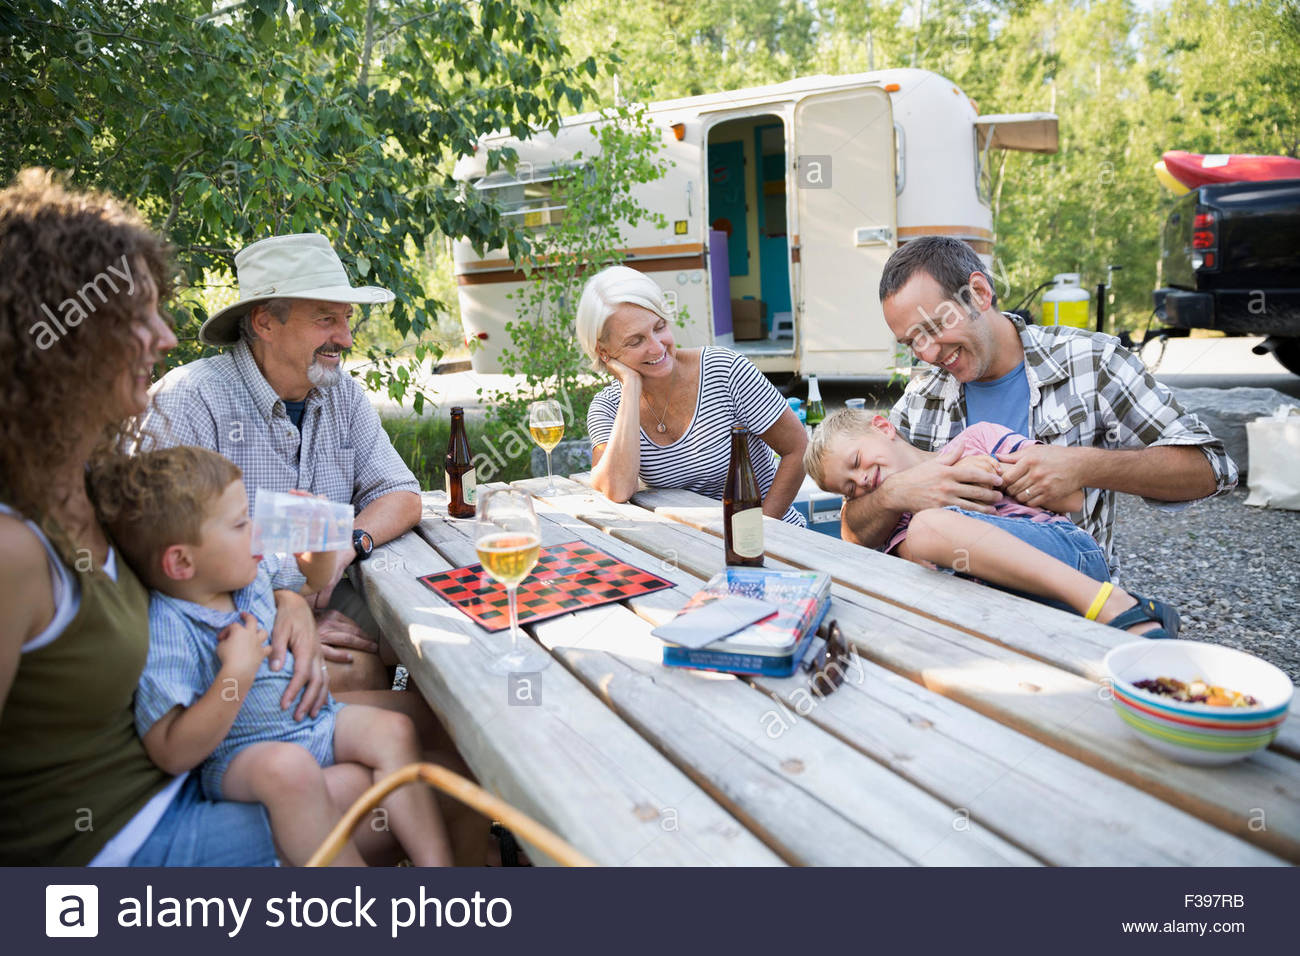 Multi-generation family bonding at campsite picnic table - Stock Image